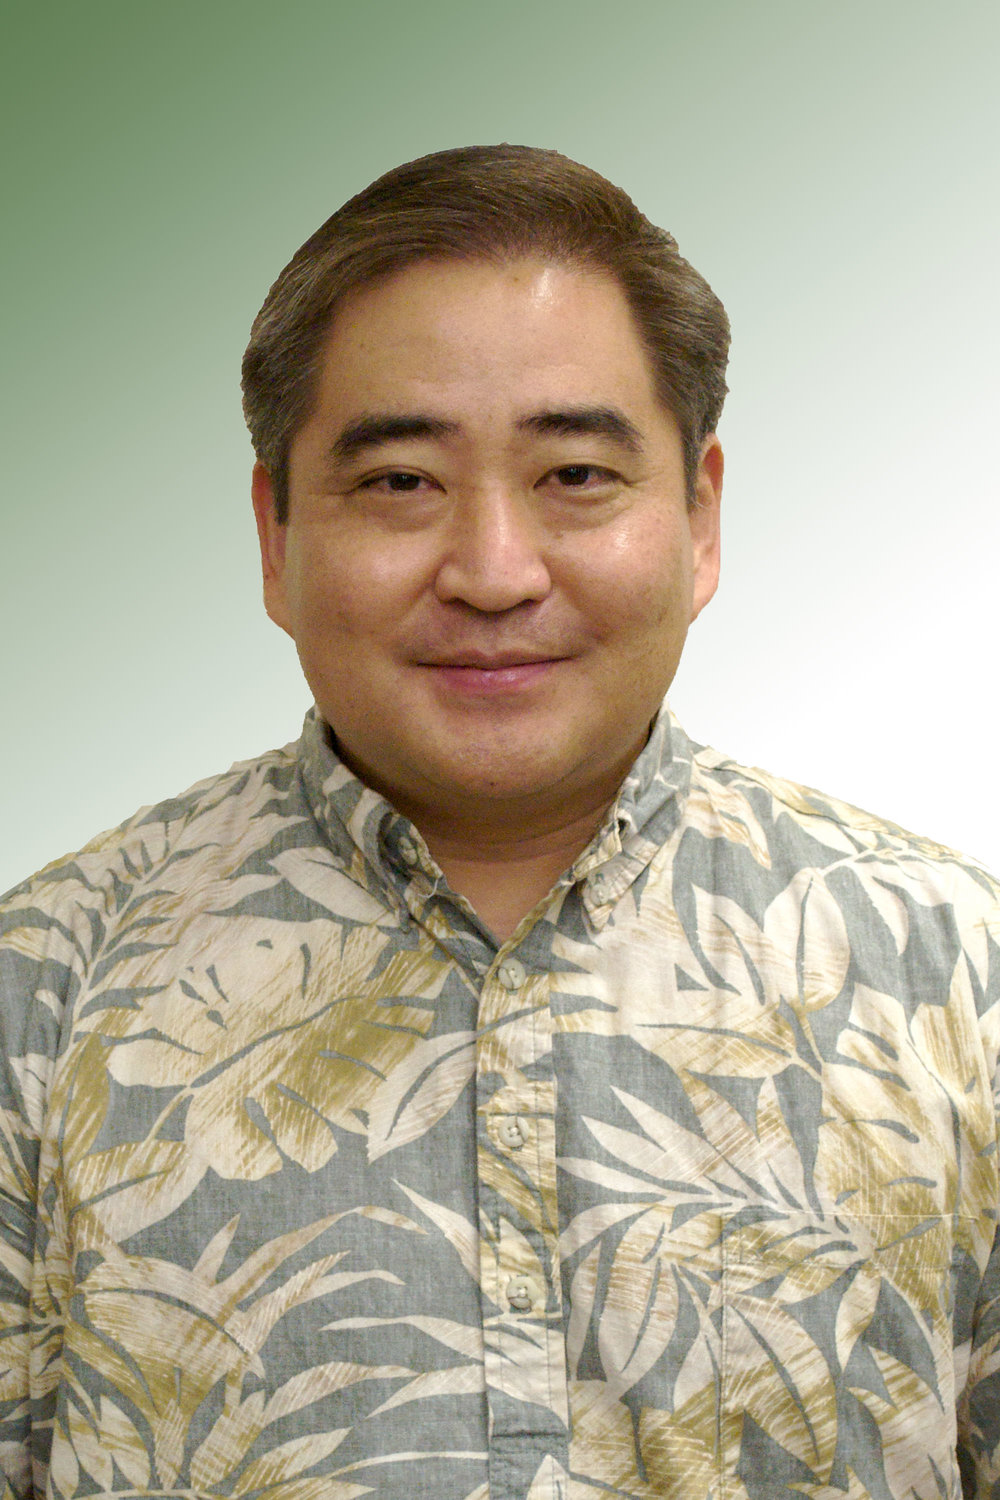 Professional Registration  1999   Electrical Engineering, Hawaii (9576) 2015   Electrical Engineering, Commonwealth of the Northern Marianas Islands (451)   Professional Experience  Garret Masuda has 22 years of electrical engineering experience and is responsible for supervising a portion of the electrical engineering staff at Insynergy Engineering, Inc.   His experience includes the design of electrical and telecommunications systems for both the public and private sectors as well as for the Department of Defense (e.g. Army, Air Force, Navy and Marine Corps) in Hawaii, Guam, Korea, Japan and other locations in the Pacific Basin.  He is a LEED Accredited Professional and a BICSI Registered Communications Distribution Designer and is currently serving as a director for the American Consulting Engineers Council Hawaii (ACECH) chapter.